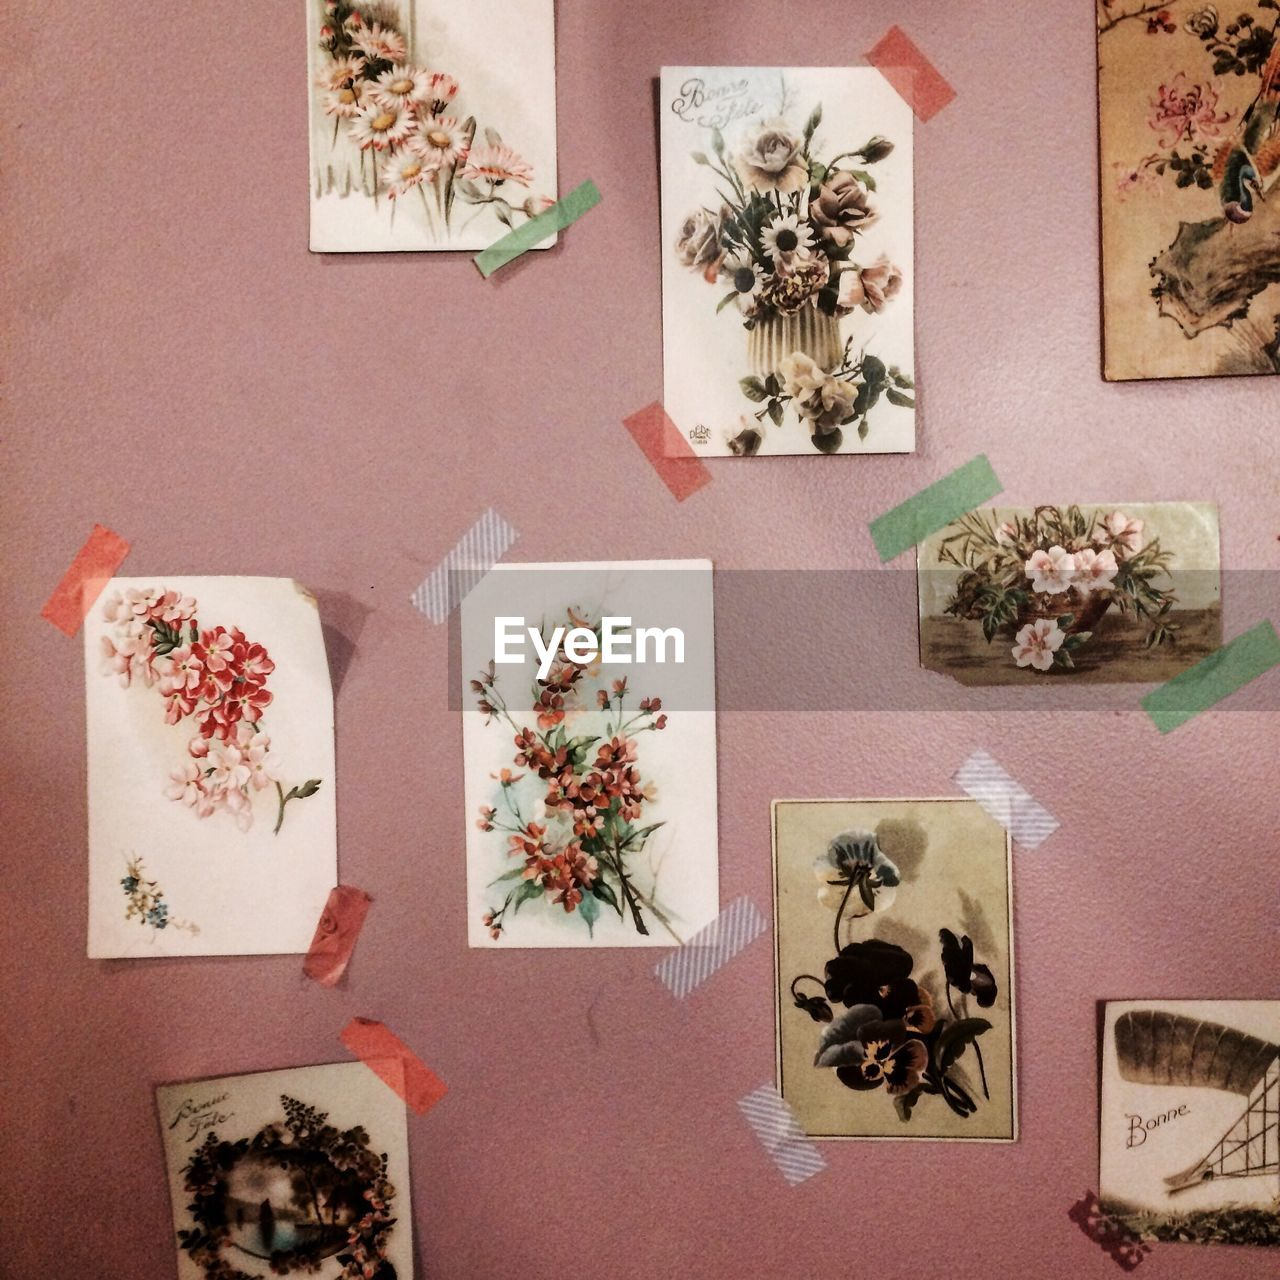 indoors, no people, high angle view, table, variation, directly above, close-up, day